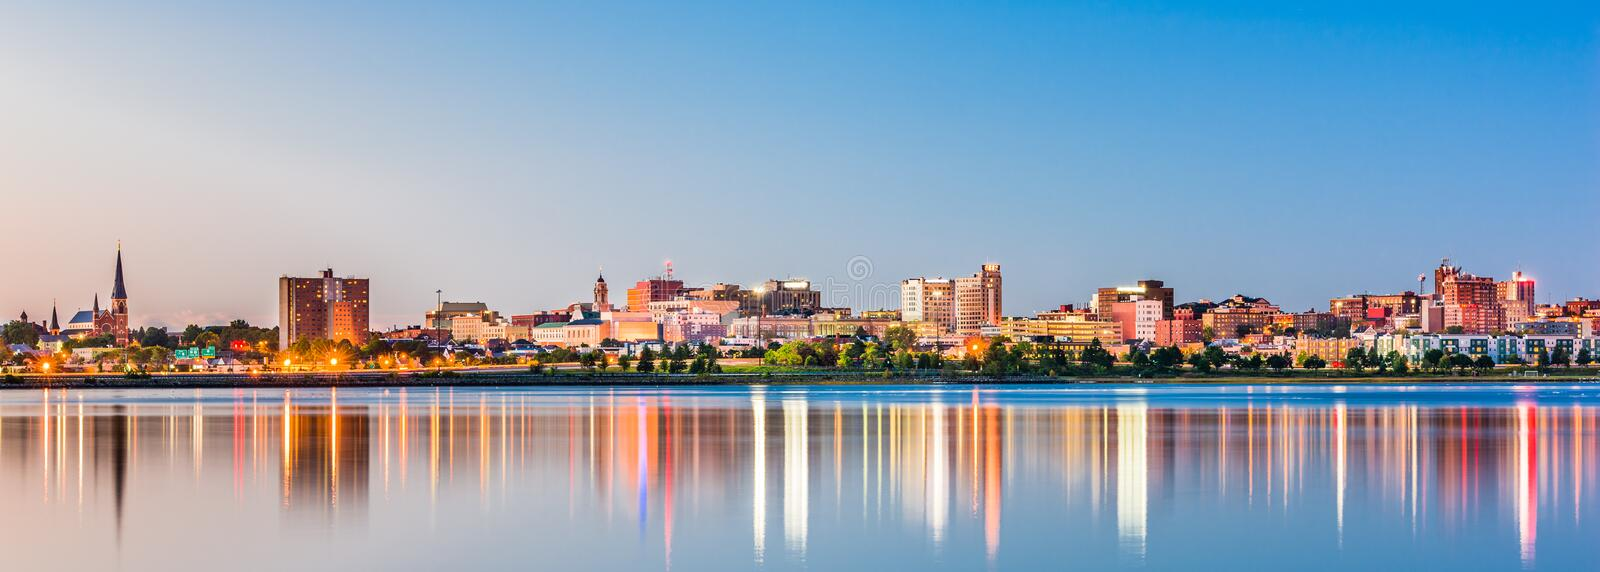 Portland, Maine, USA downtown skyline from Back Cove royalty free stock image